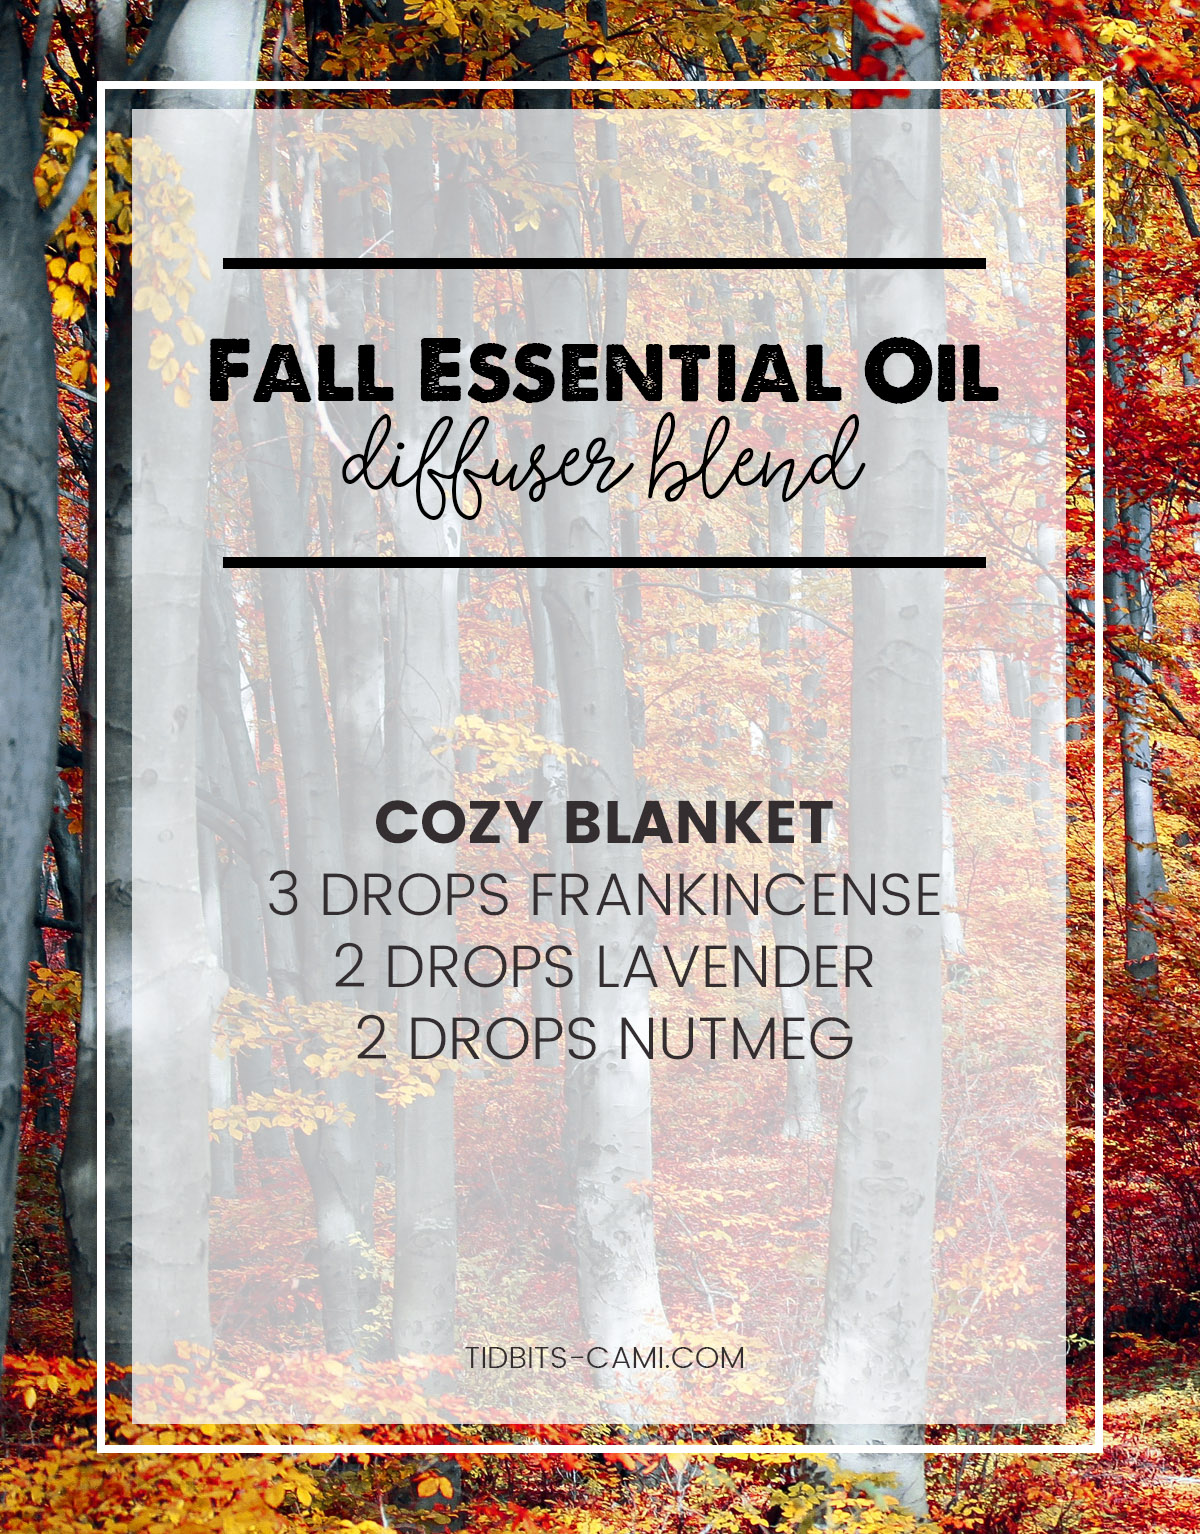 cozy blanket essential oil diffuser blend